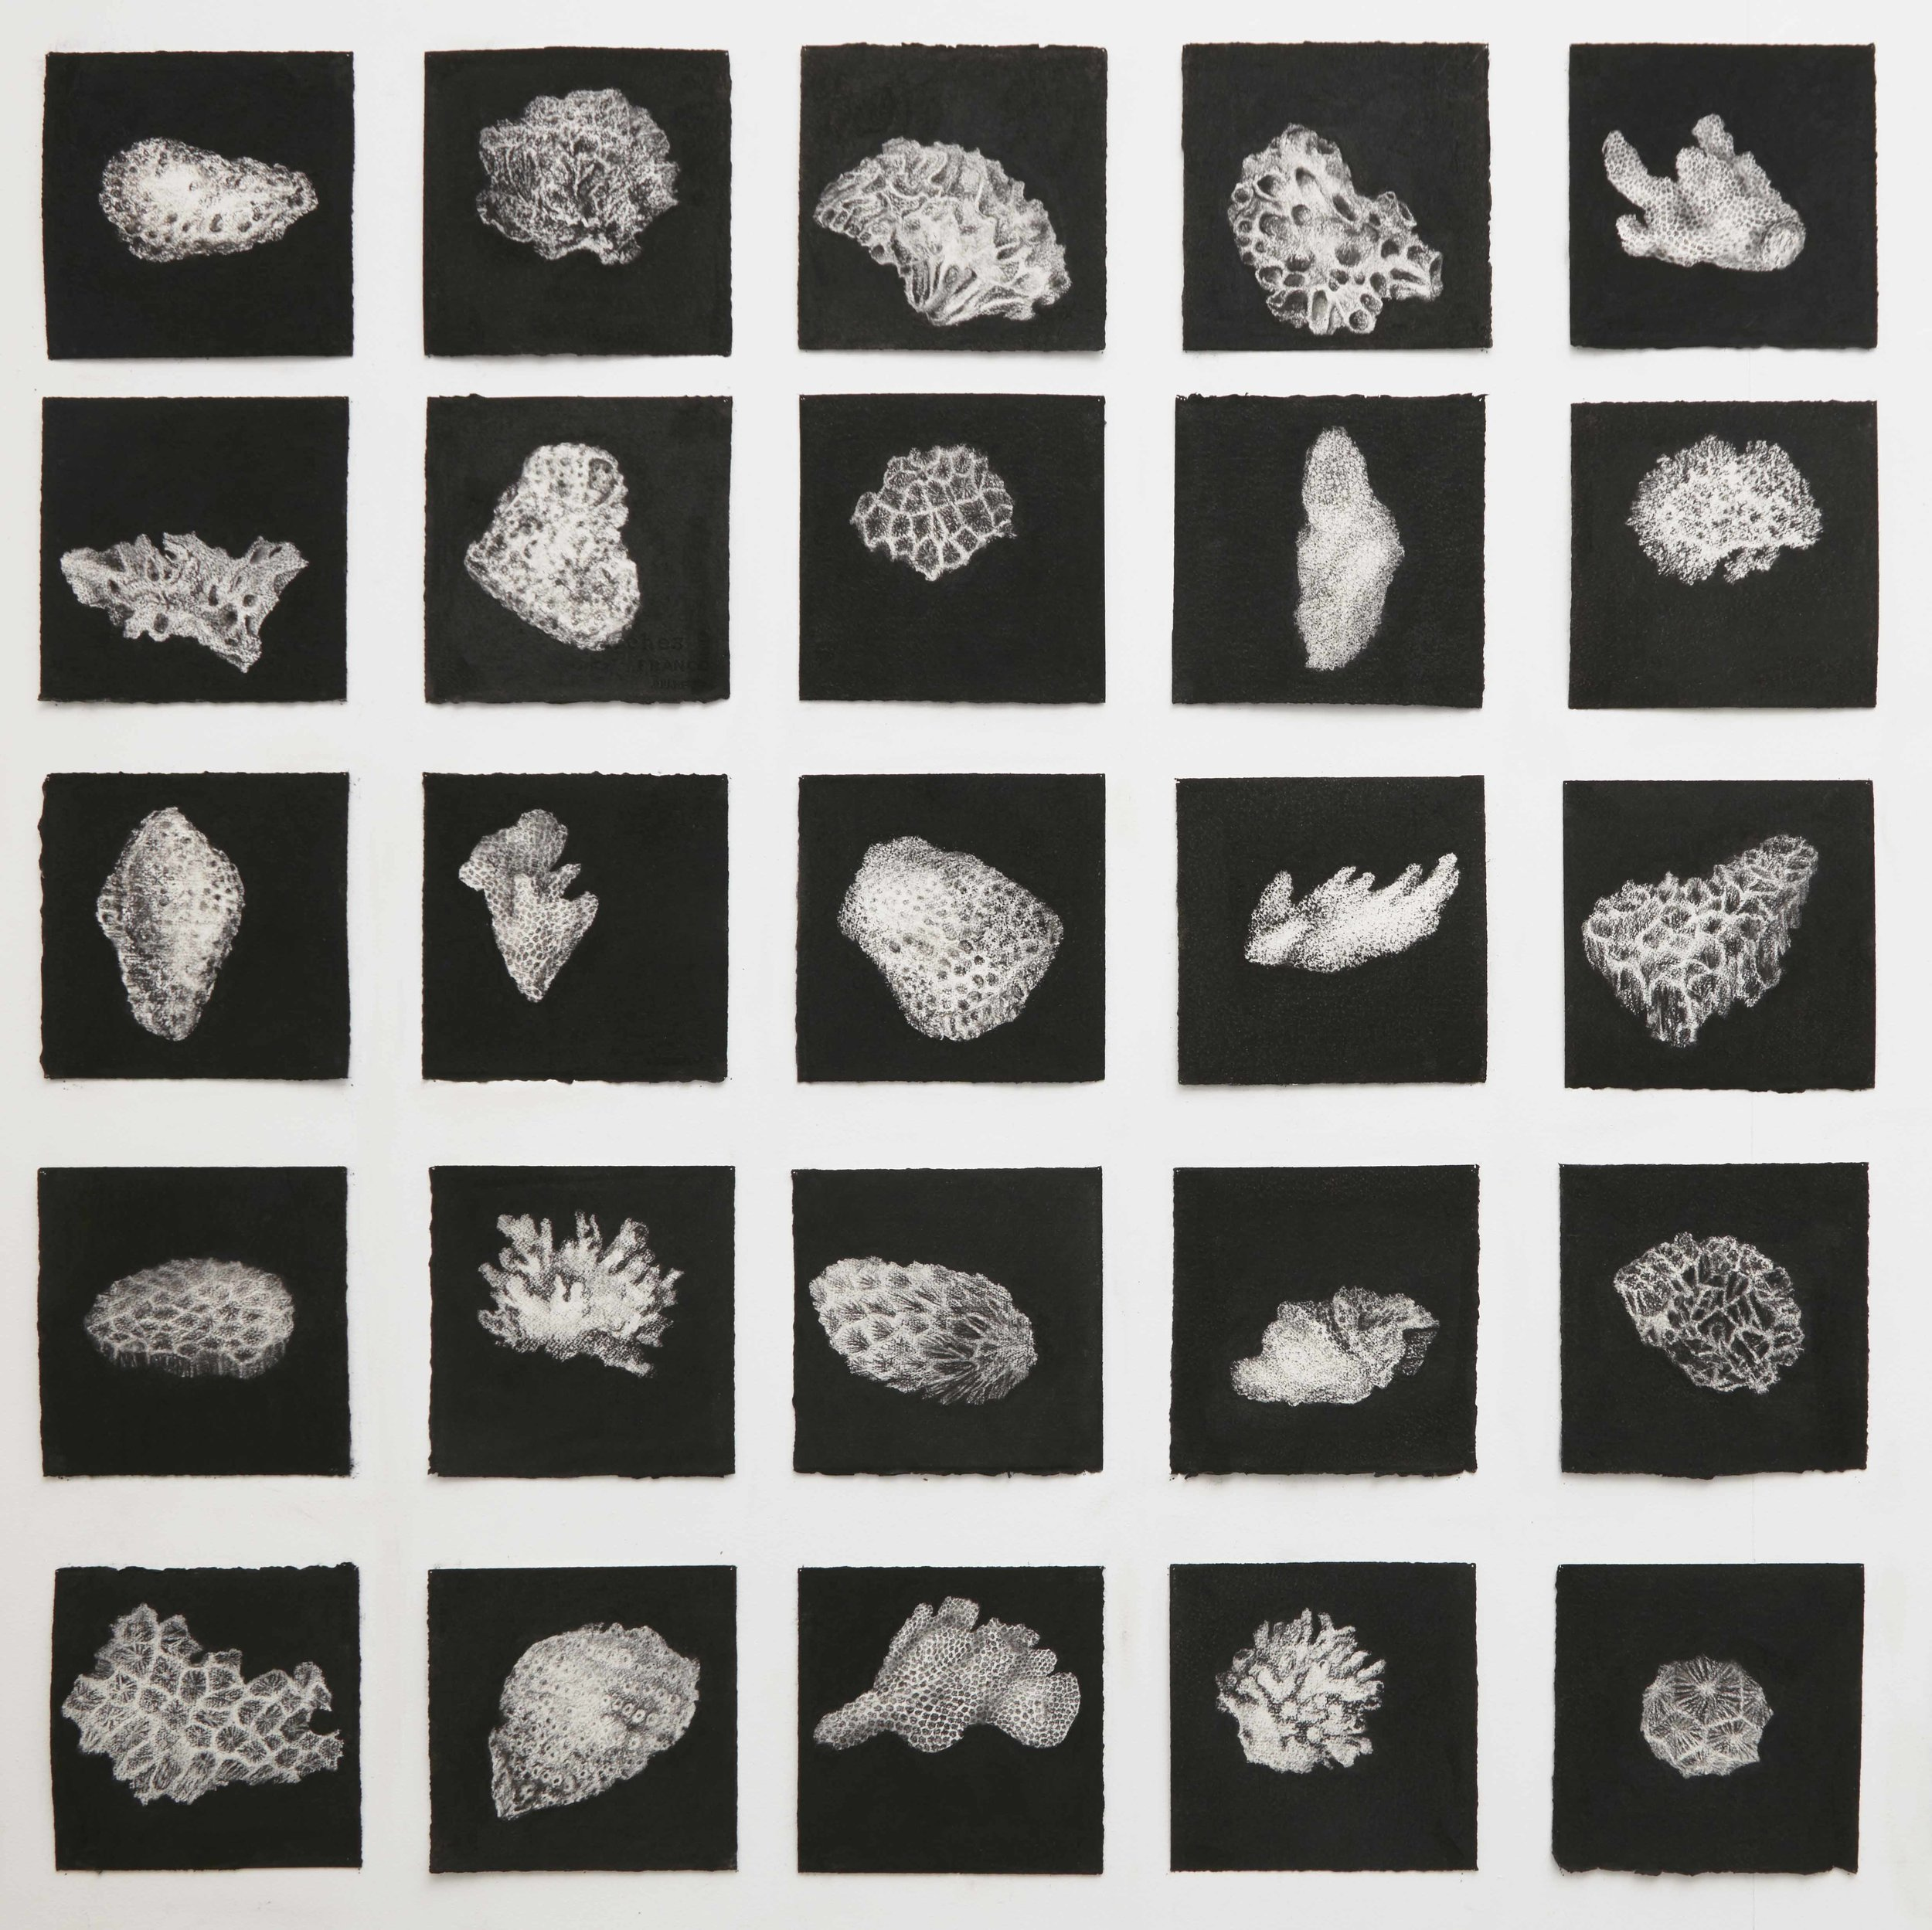 Twenty five corals, 2014-2015, charcoal on twenty five sheets of white paper; 19 x 19 cm each sheet (installation size variable), installation image Glasshouse Port Macquarie Regional Gallery 2016